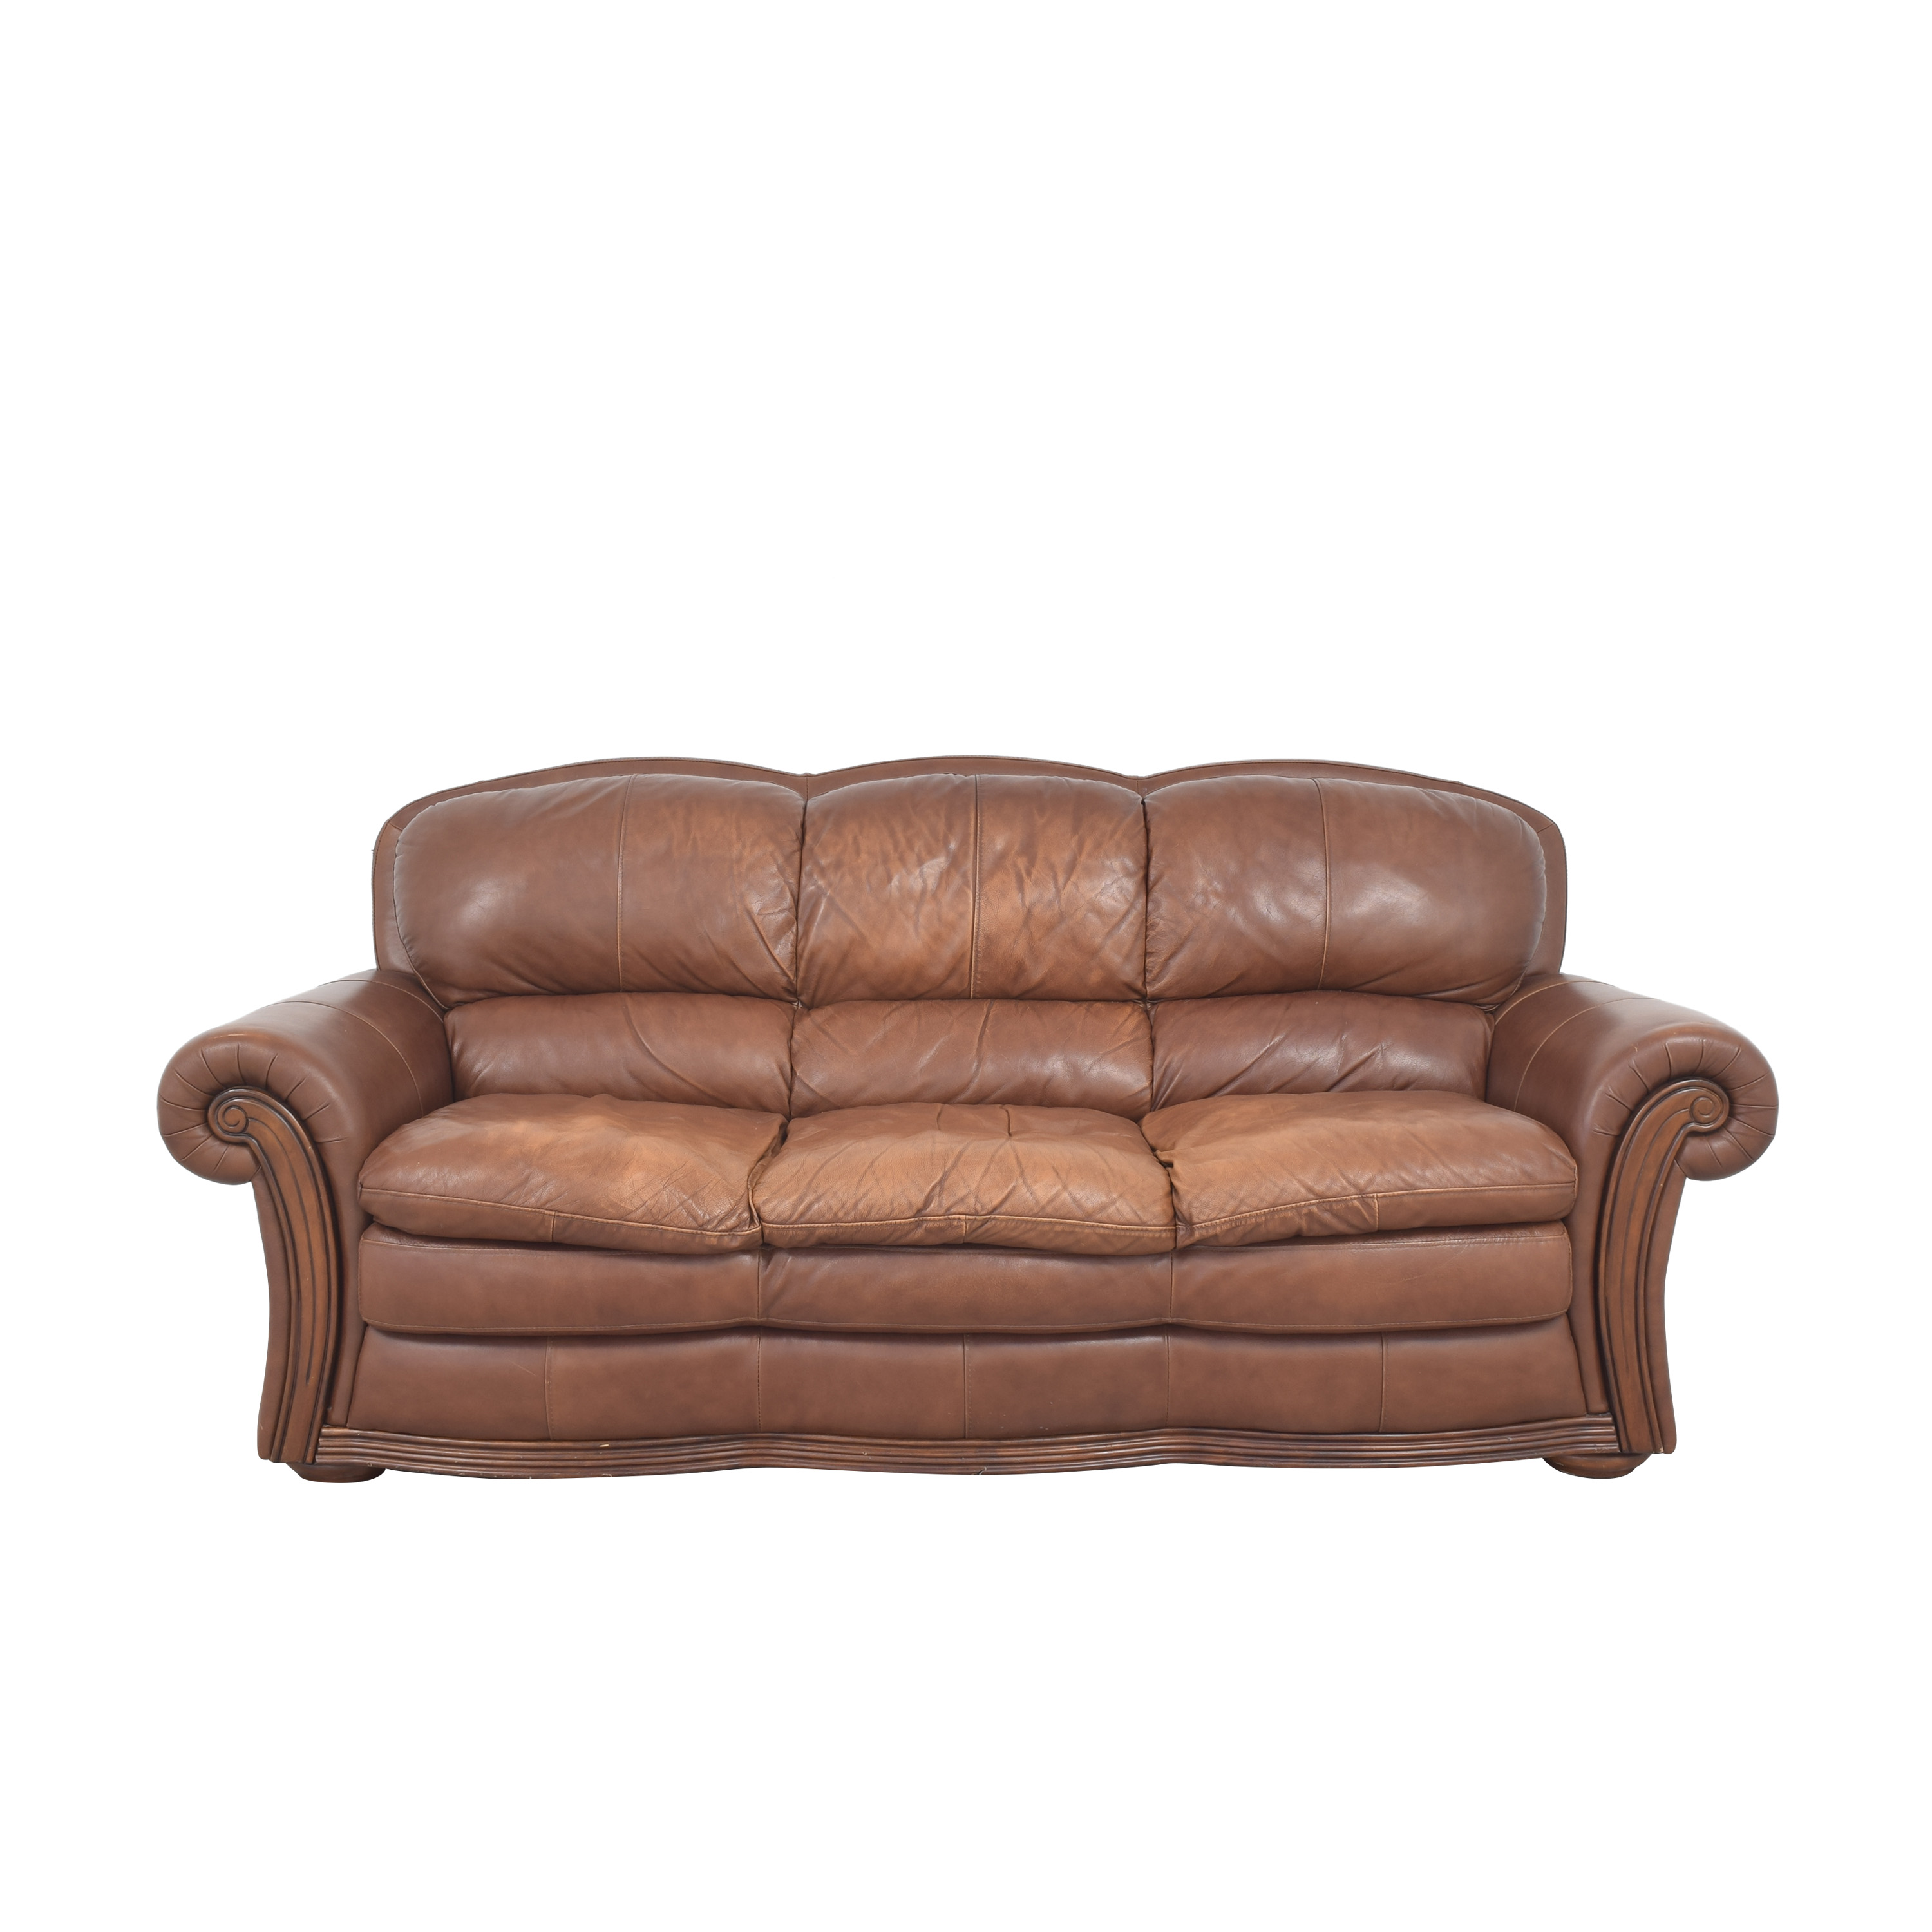 Superb Superb Creation Roll Arm Sofa dimensions